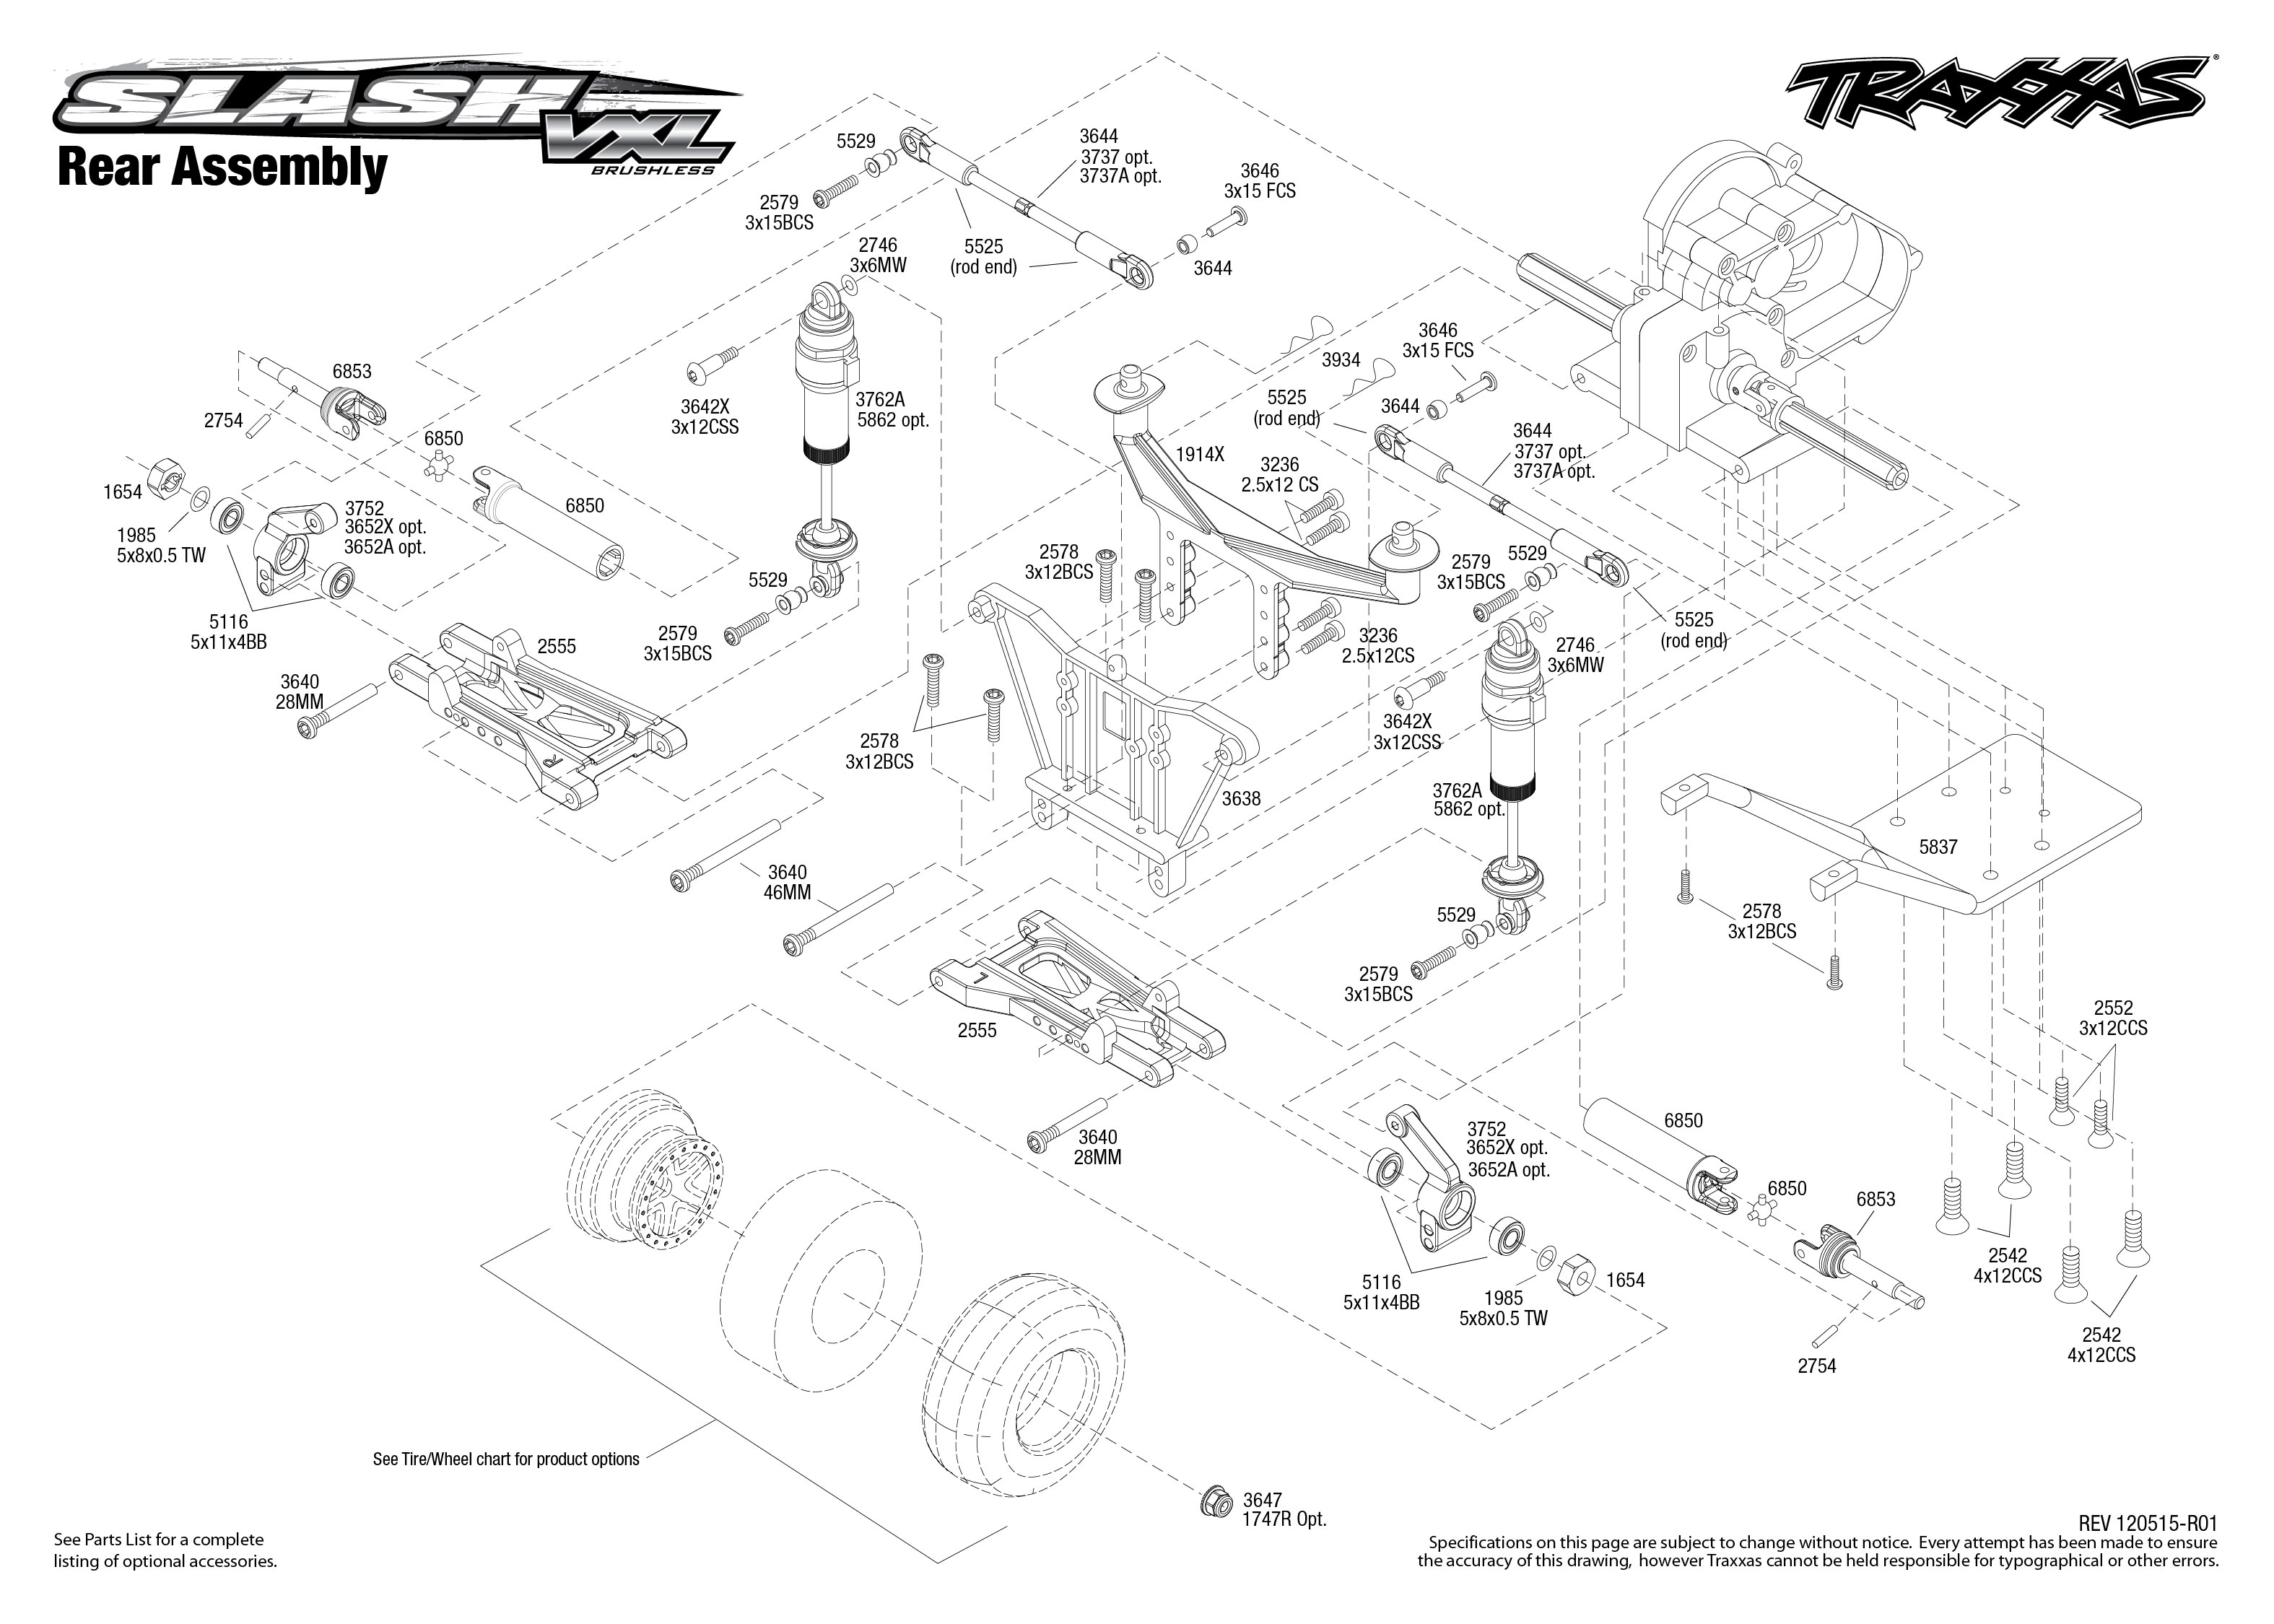 Traxxas Rustler Parts Exploded 1 10 Scale Slash 4x4 Brushless Short Course Truck 6808l Vxl 2wd 5807l